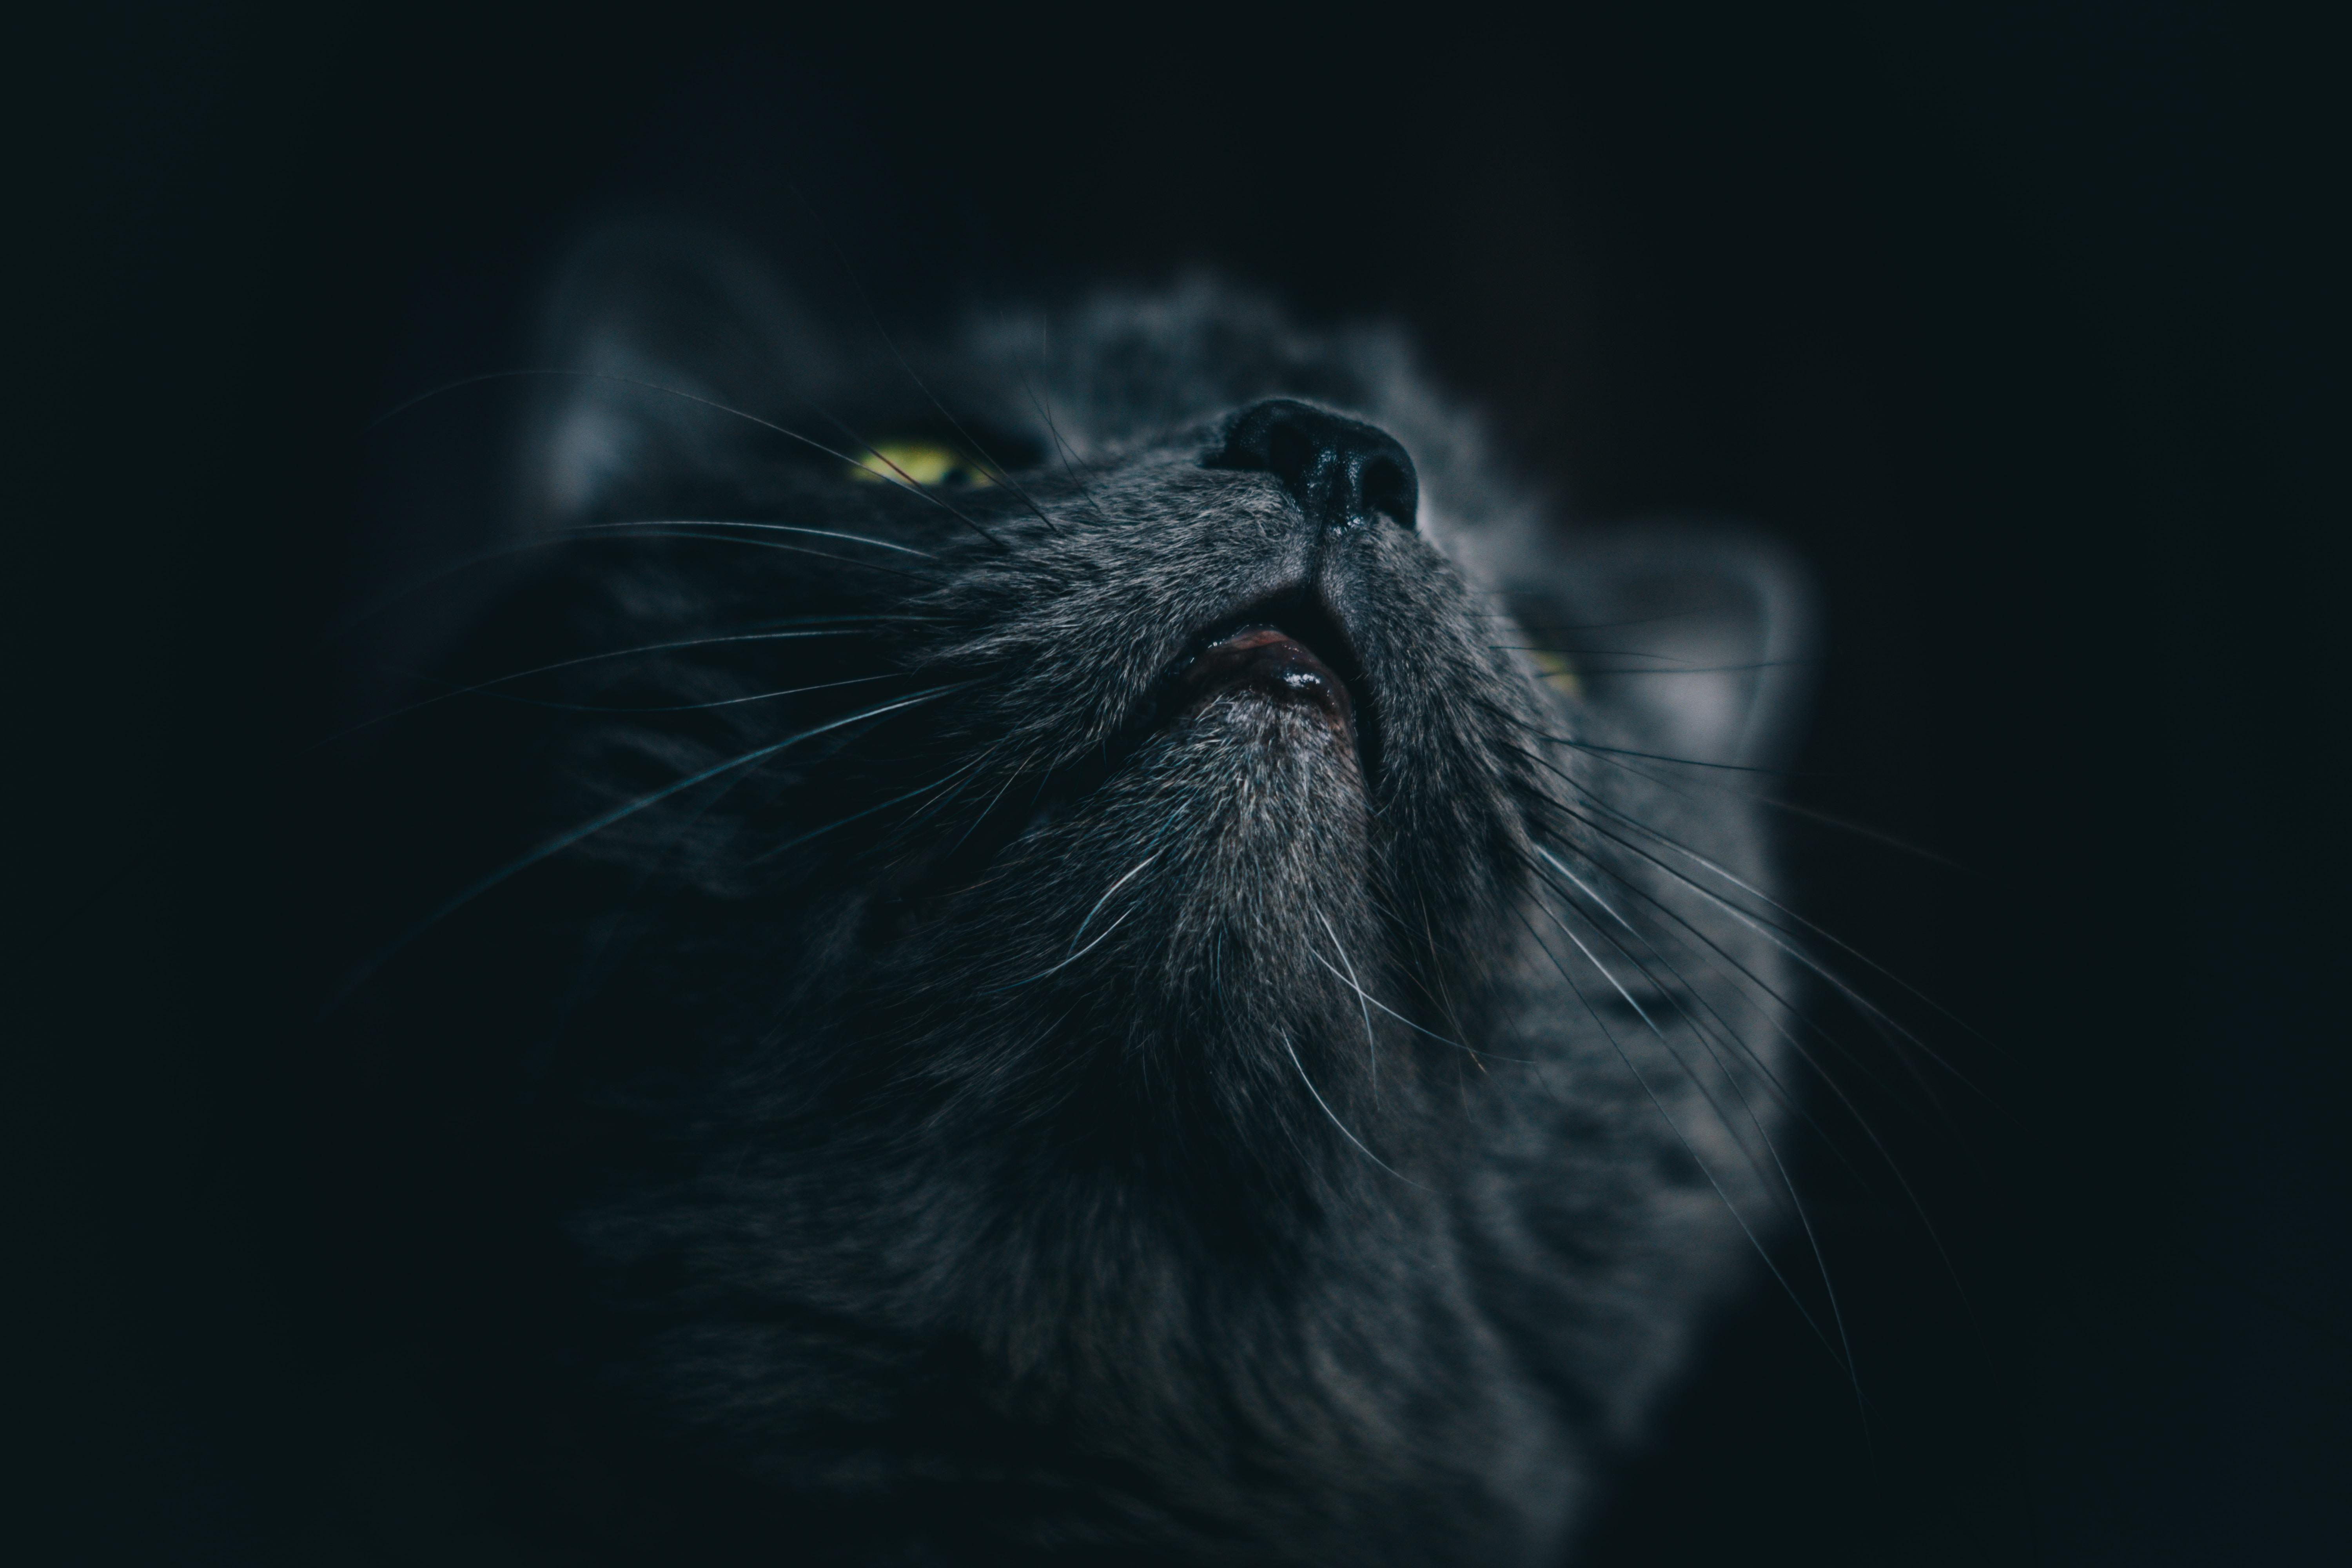 62420 download wallpaper Animals, Cat, Grey, Muzzle, Pet screensavers and pictures for free